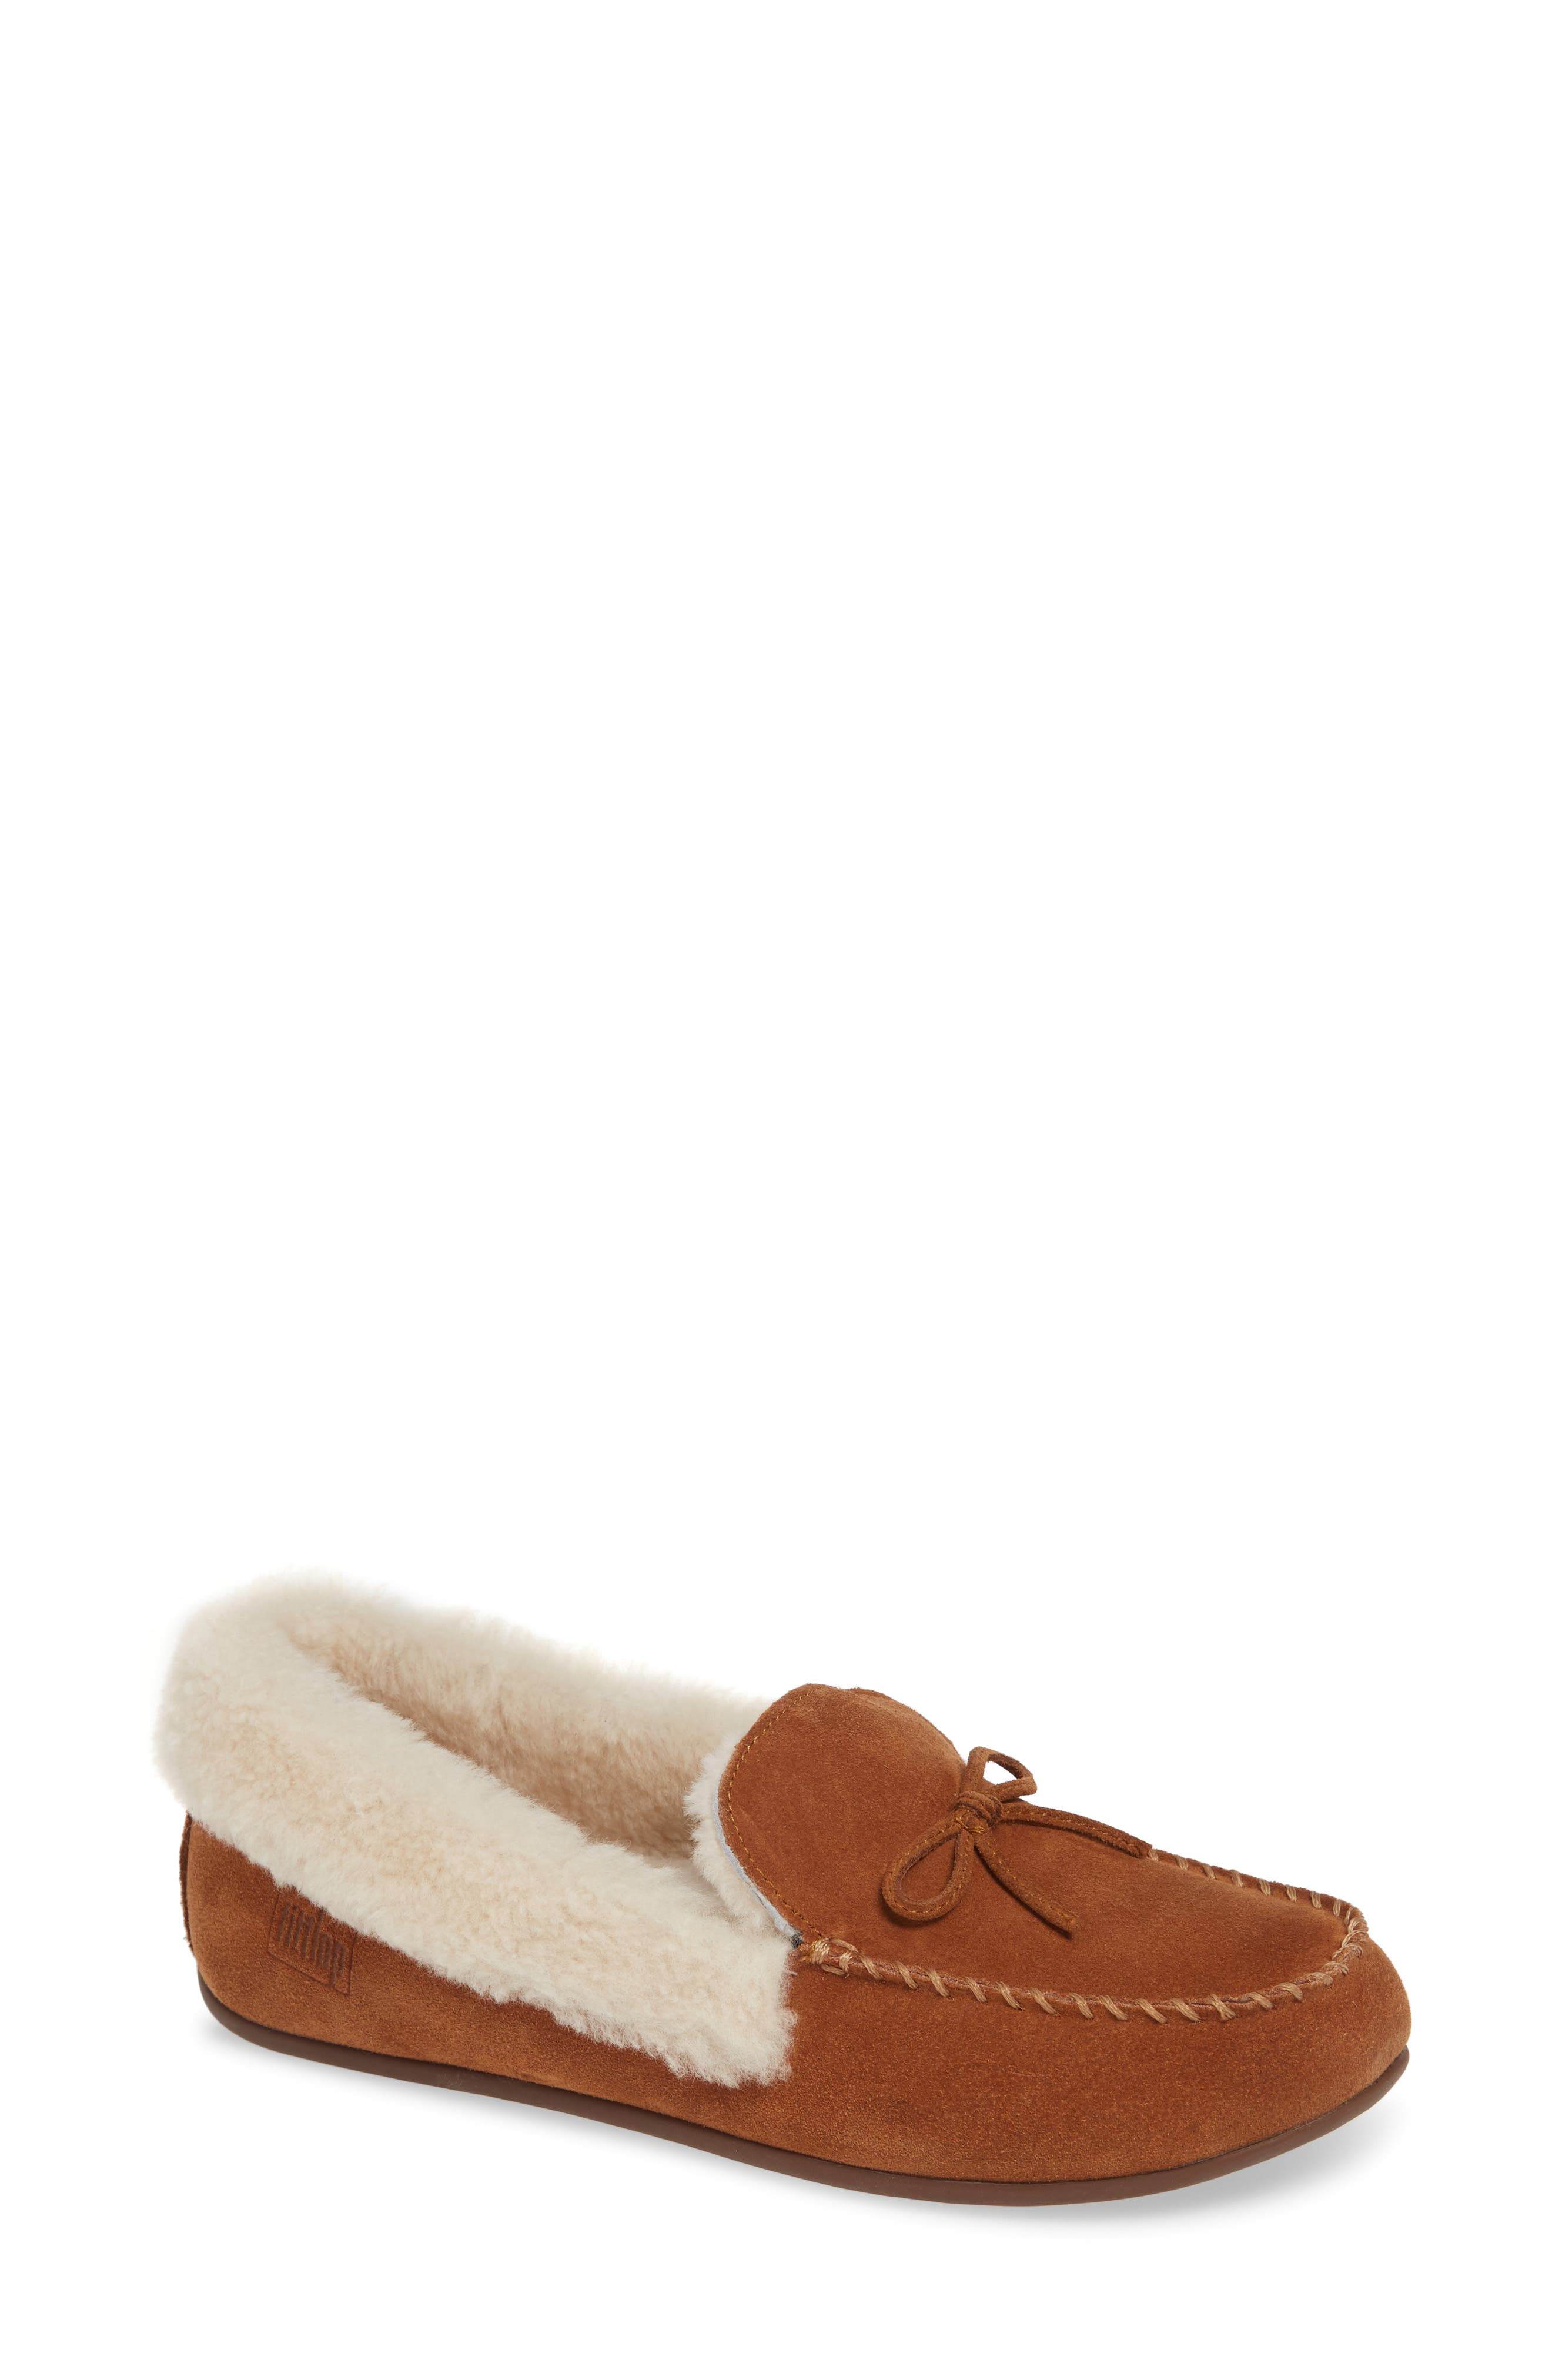 Clara Genuine Shearling Lined Moccasin,                         Main,                         color, TUMBLED TAN SUEDE